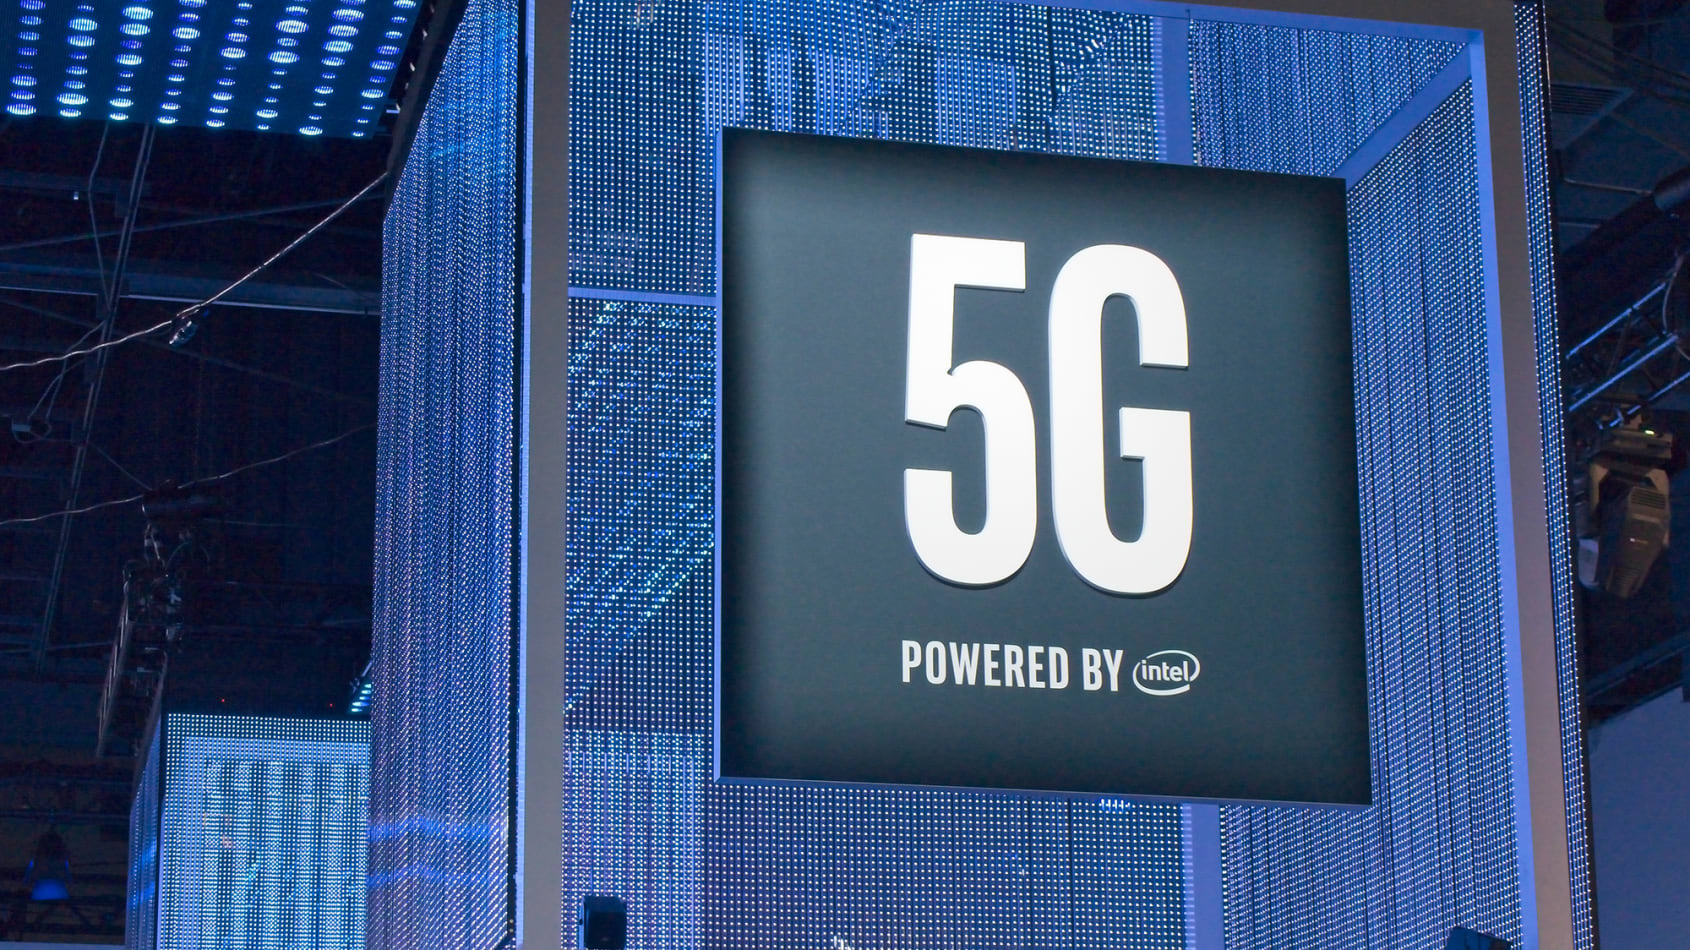 Intel and VMware collaborate to accelerate 5G rollout